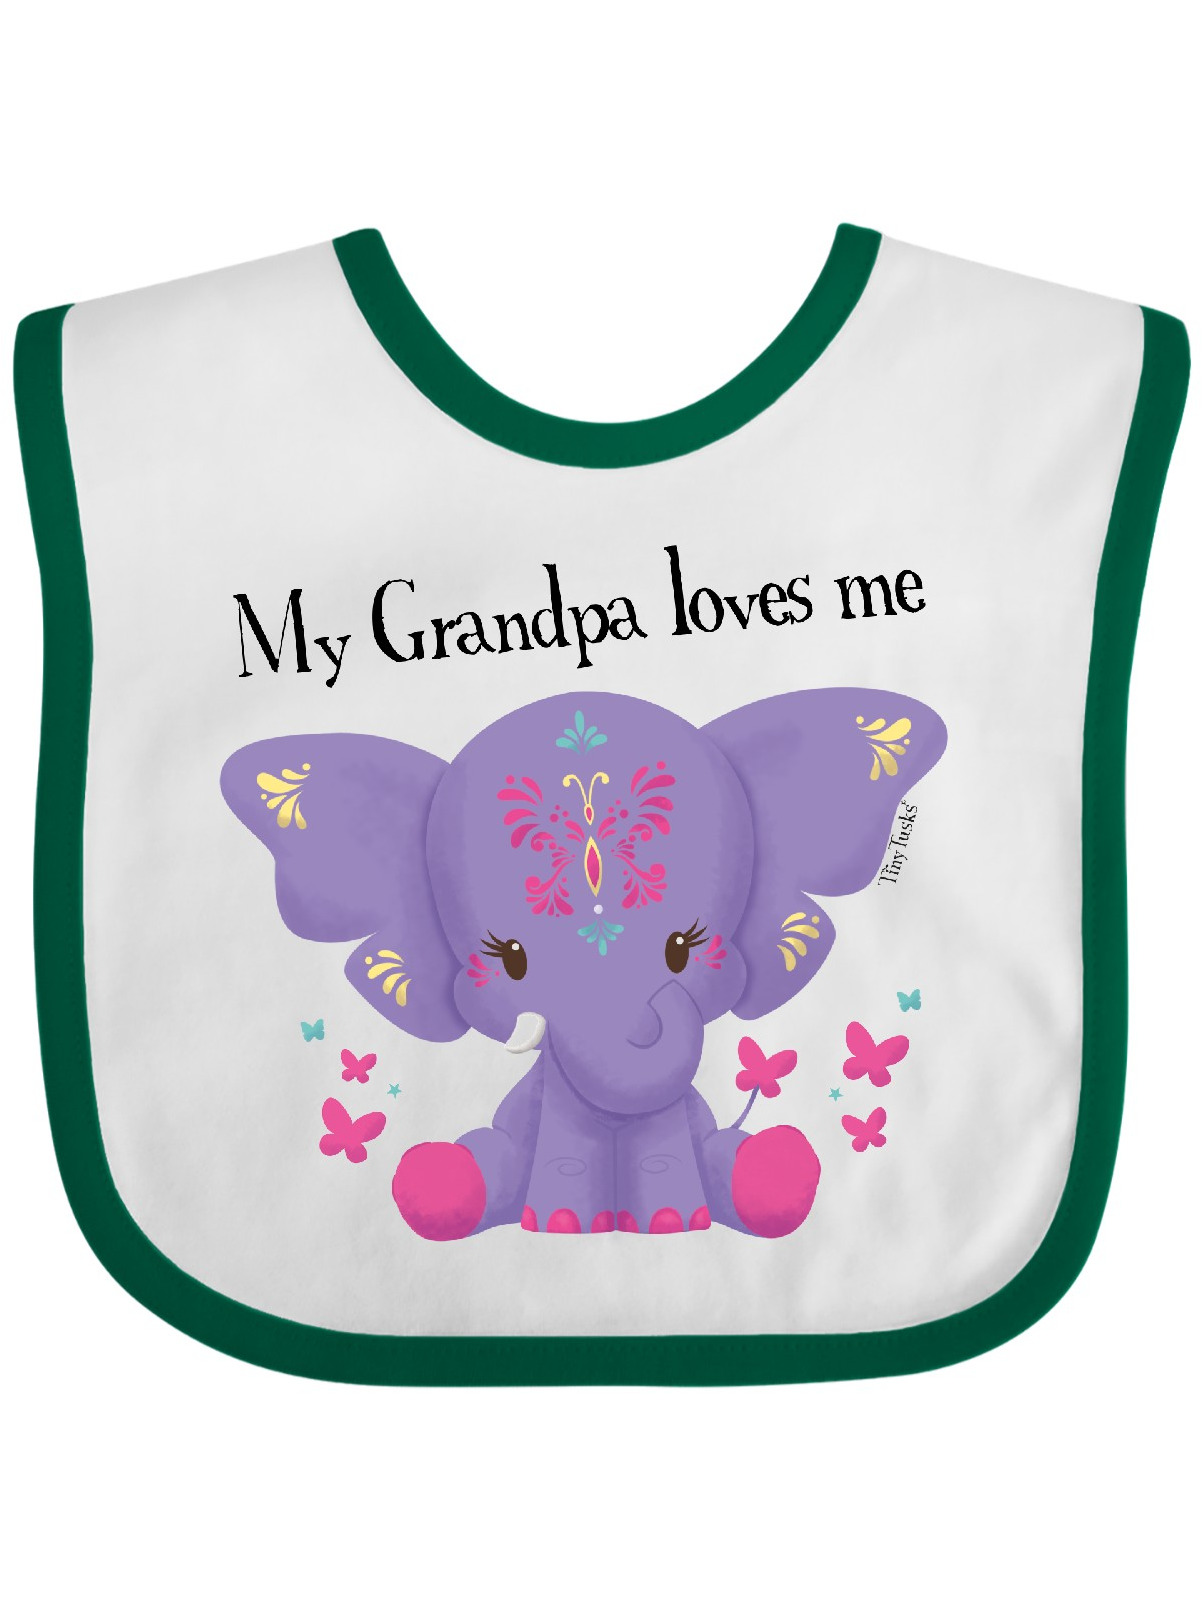 Elephant Baby Bib READY TO SHIP for Dress Up Occasions with Bow Pink and Gray Baby Shower Toddler Bib Baby Gift